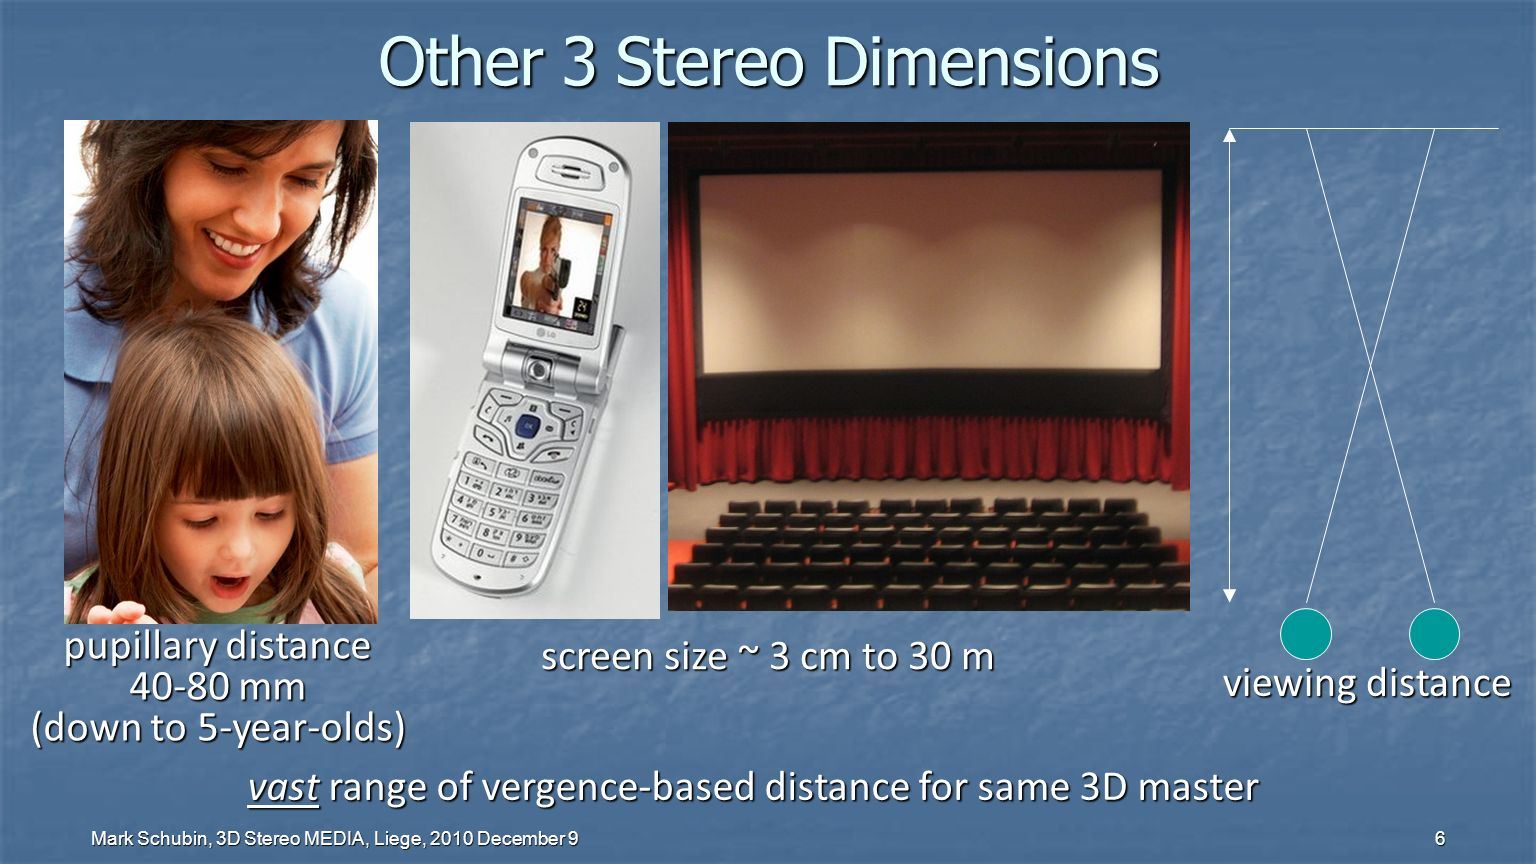 Mark Schubin, 3D Stereo MEDIA, Liege, 2010 December 9 6 Other 3 Stereo Dimensions pupillary distance 40-80 mm (down to 5-year-olds) screen size ~ 3 cm to 30 m viewing distance vast range of vergence-based distance for same 3D master